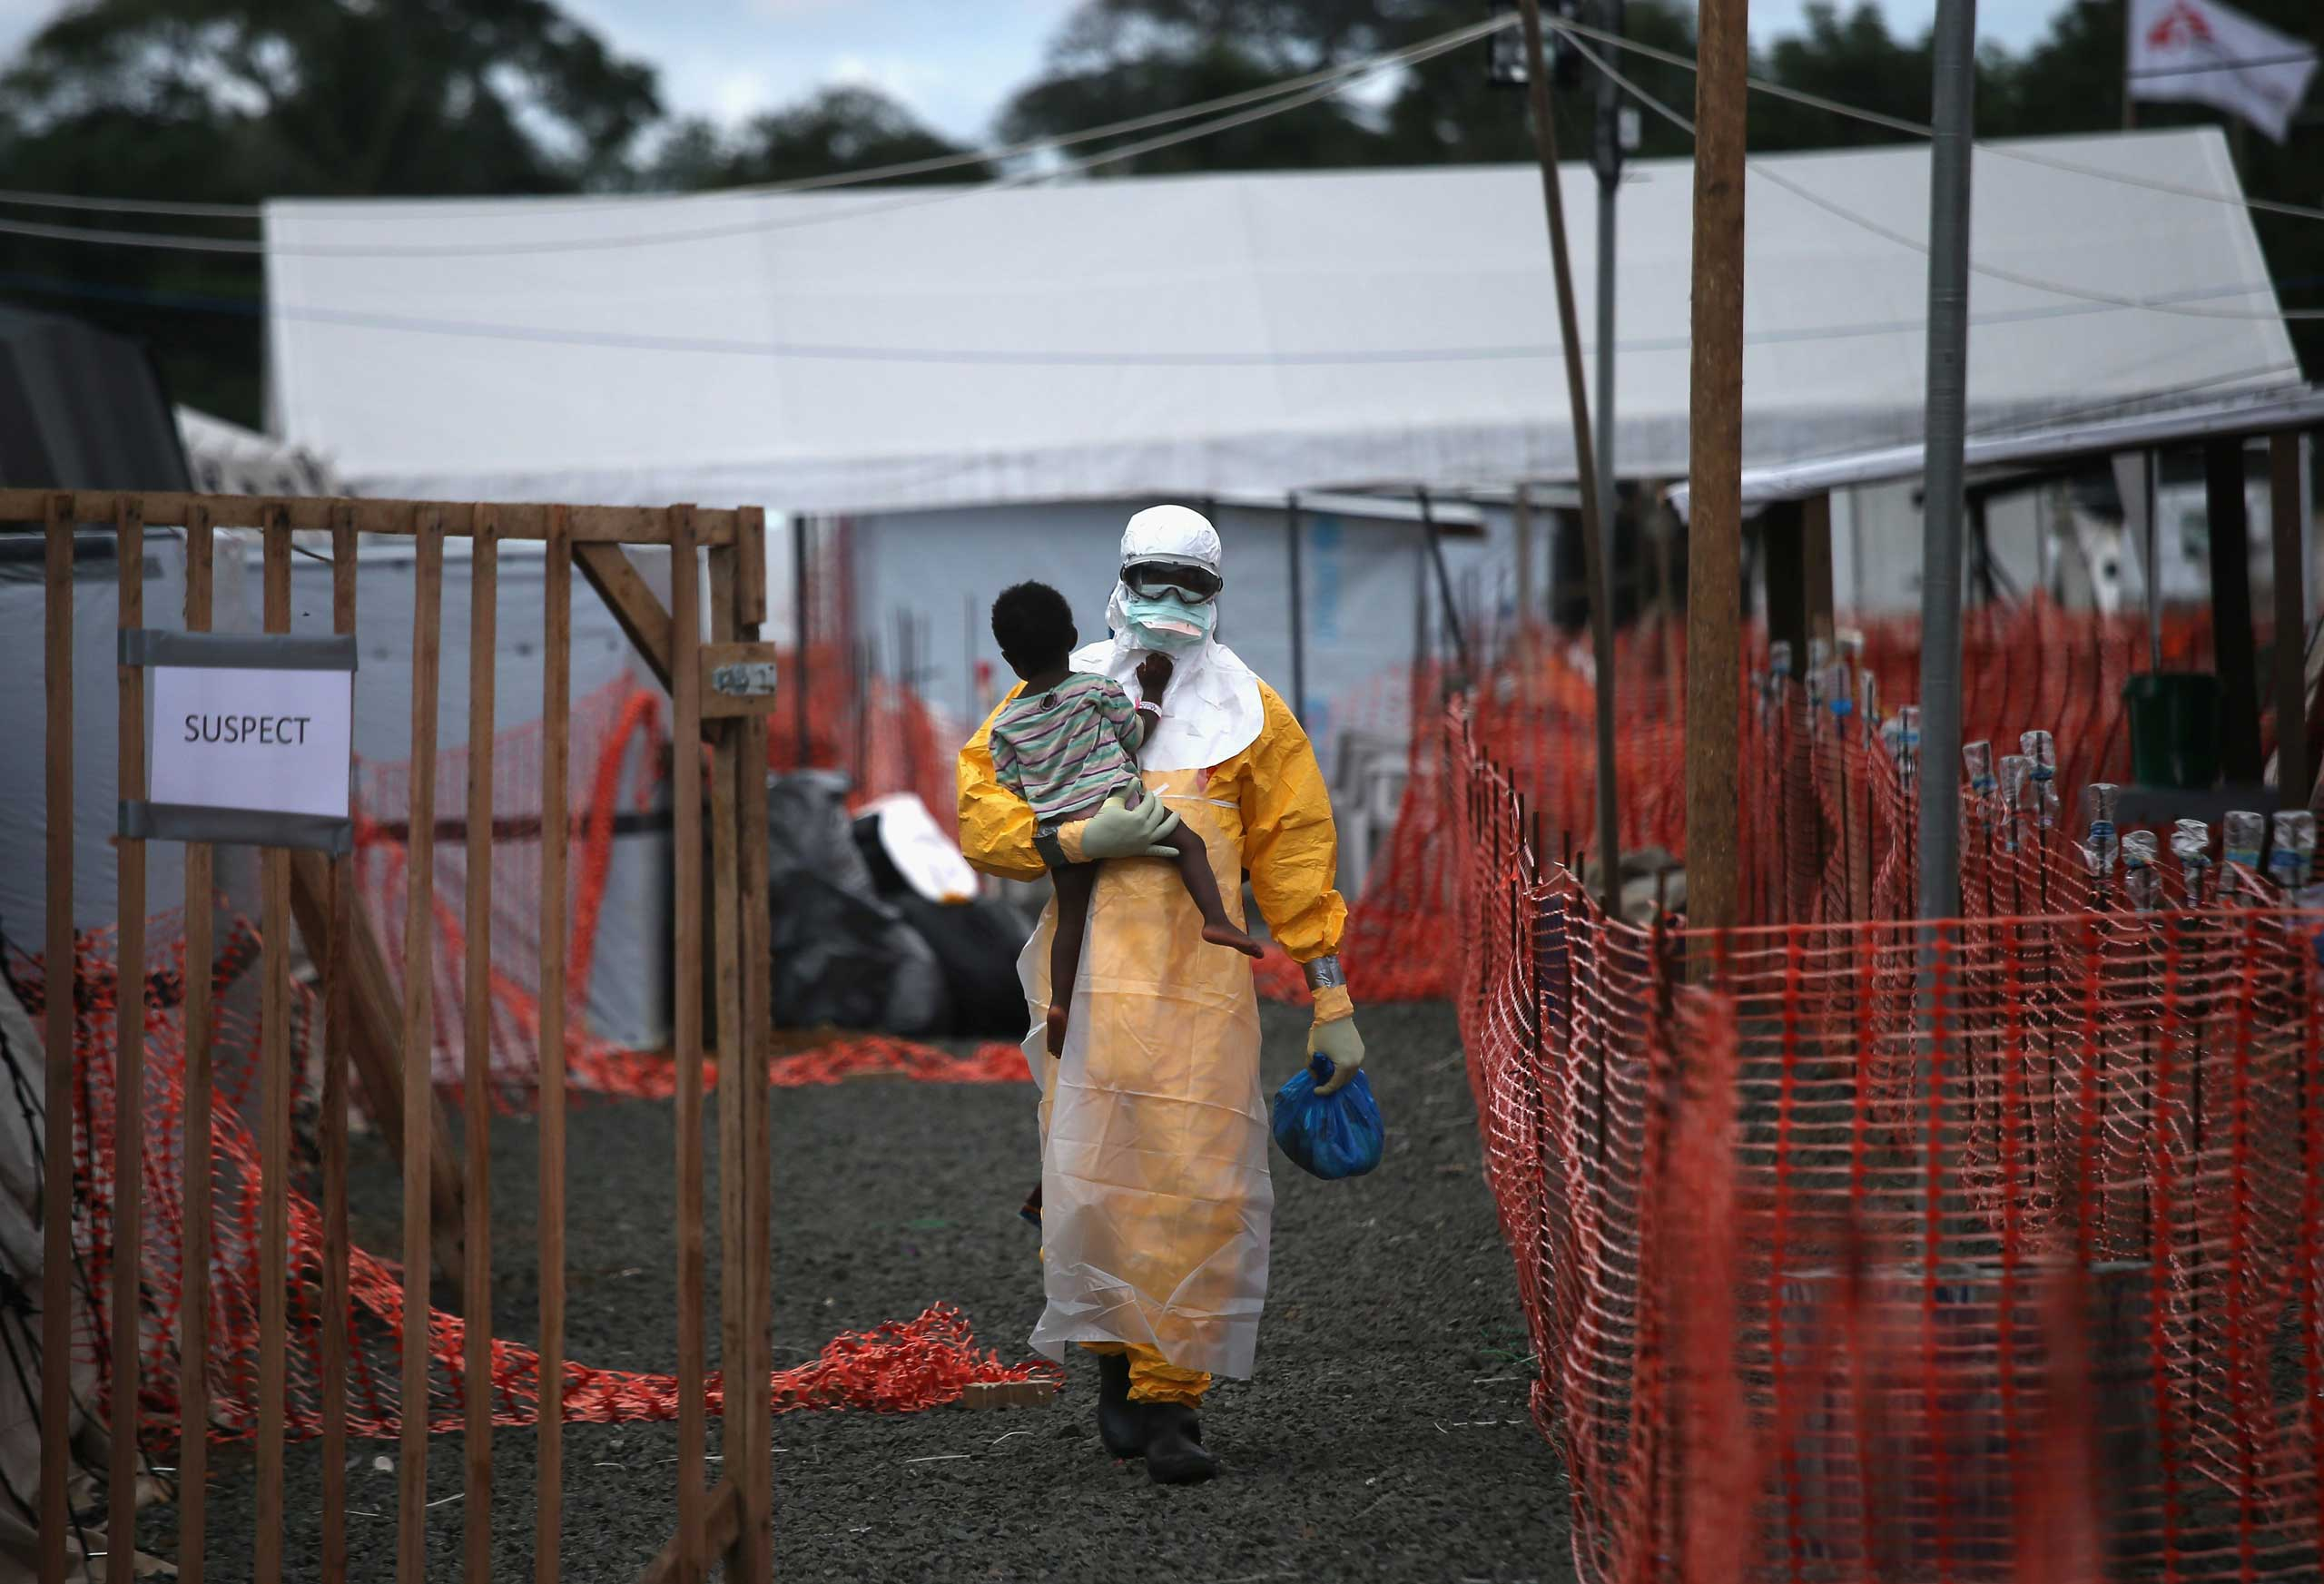 A Doctors Without Borders health worker in protective clothing carries a child suspected of having Ebola in the MSF treatment center on Oct. 5, 2014, in Paynesville, Liberia